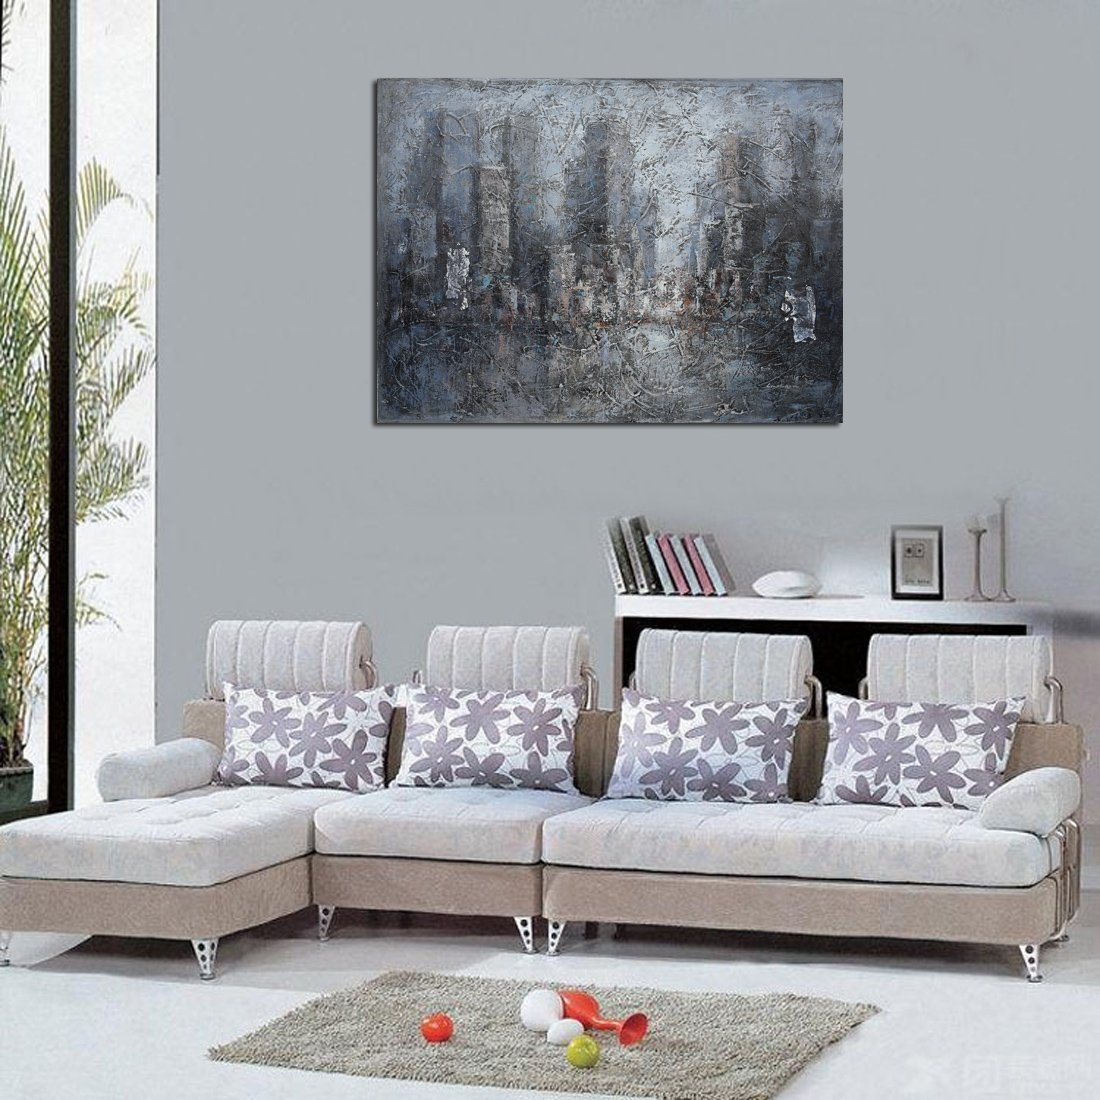 Modern Abstract Oil Paintings Wall Home Decor Artwork Abstract Extra Large-City Hand Painted on Canvas 24X30 Inch (Artwork Abstract Extra Large-City Printed Painting on Canvas) by B-Arts